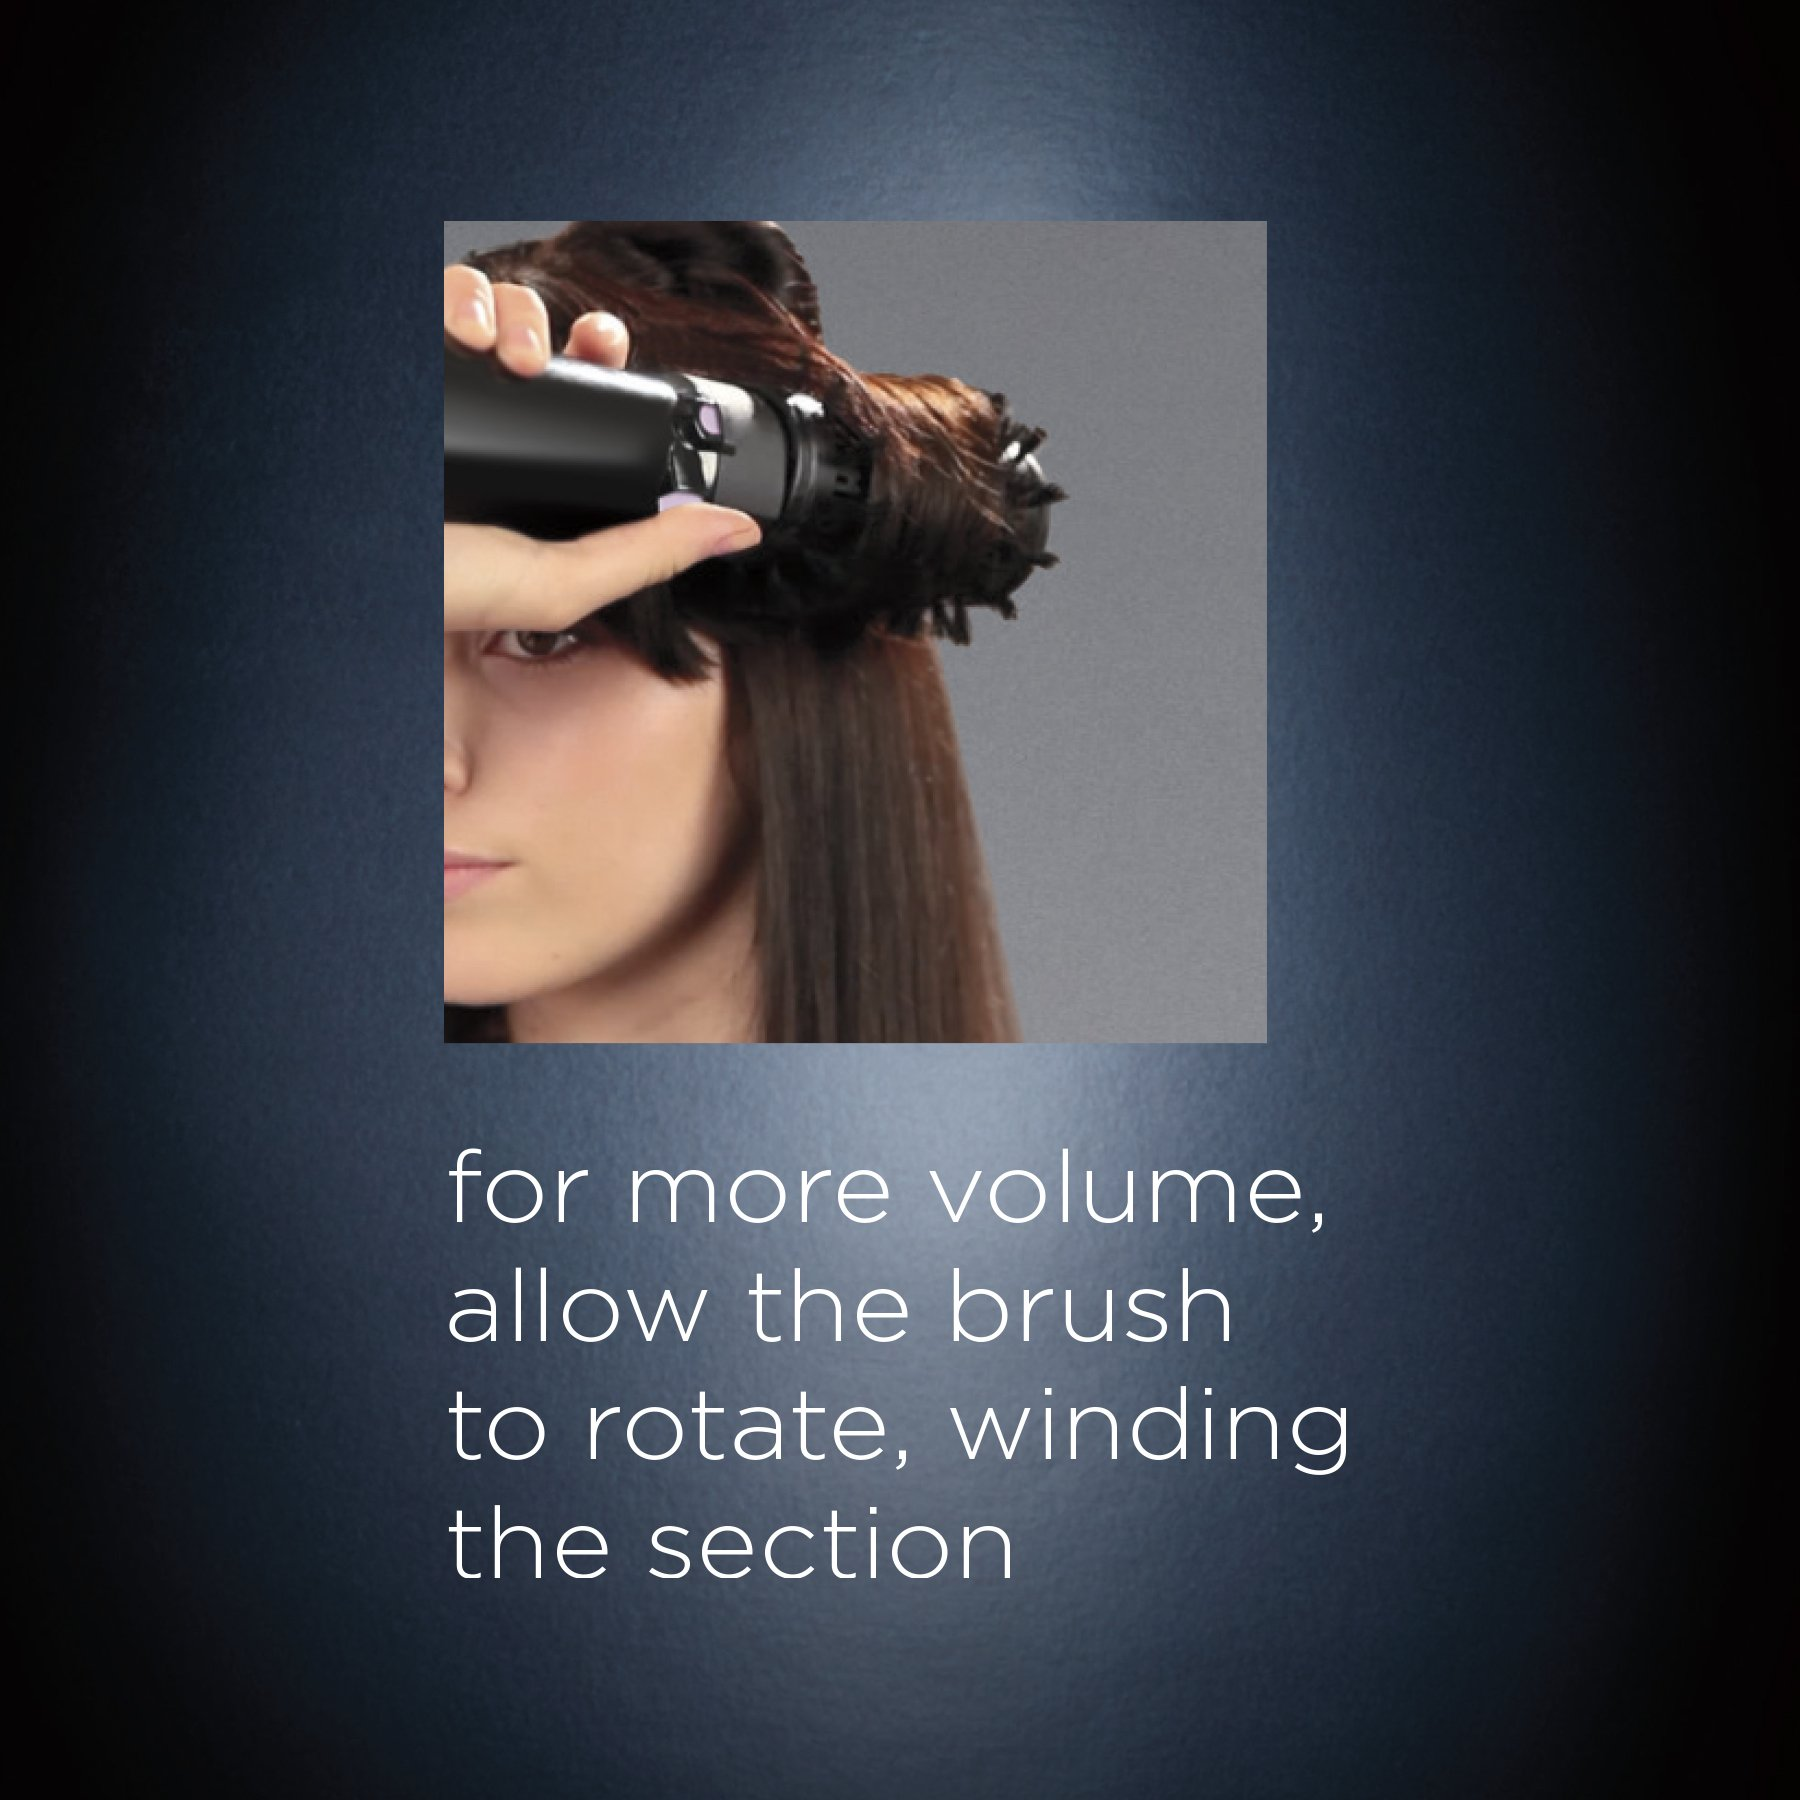 INFINITIPRO BY CONAIR Tourmaline Ceramic Hot Air Brush Styler + Paddle Brush Attachment; Get A Salon Blowout at Home by Conair (Image #8)